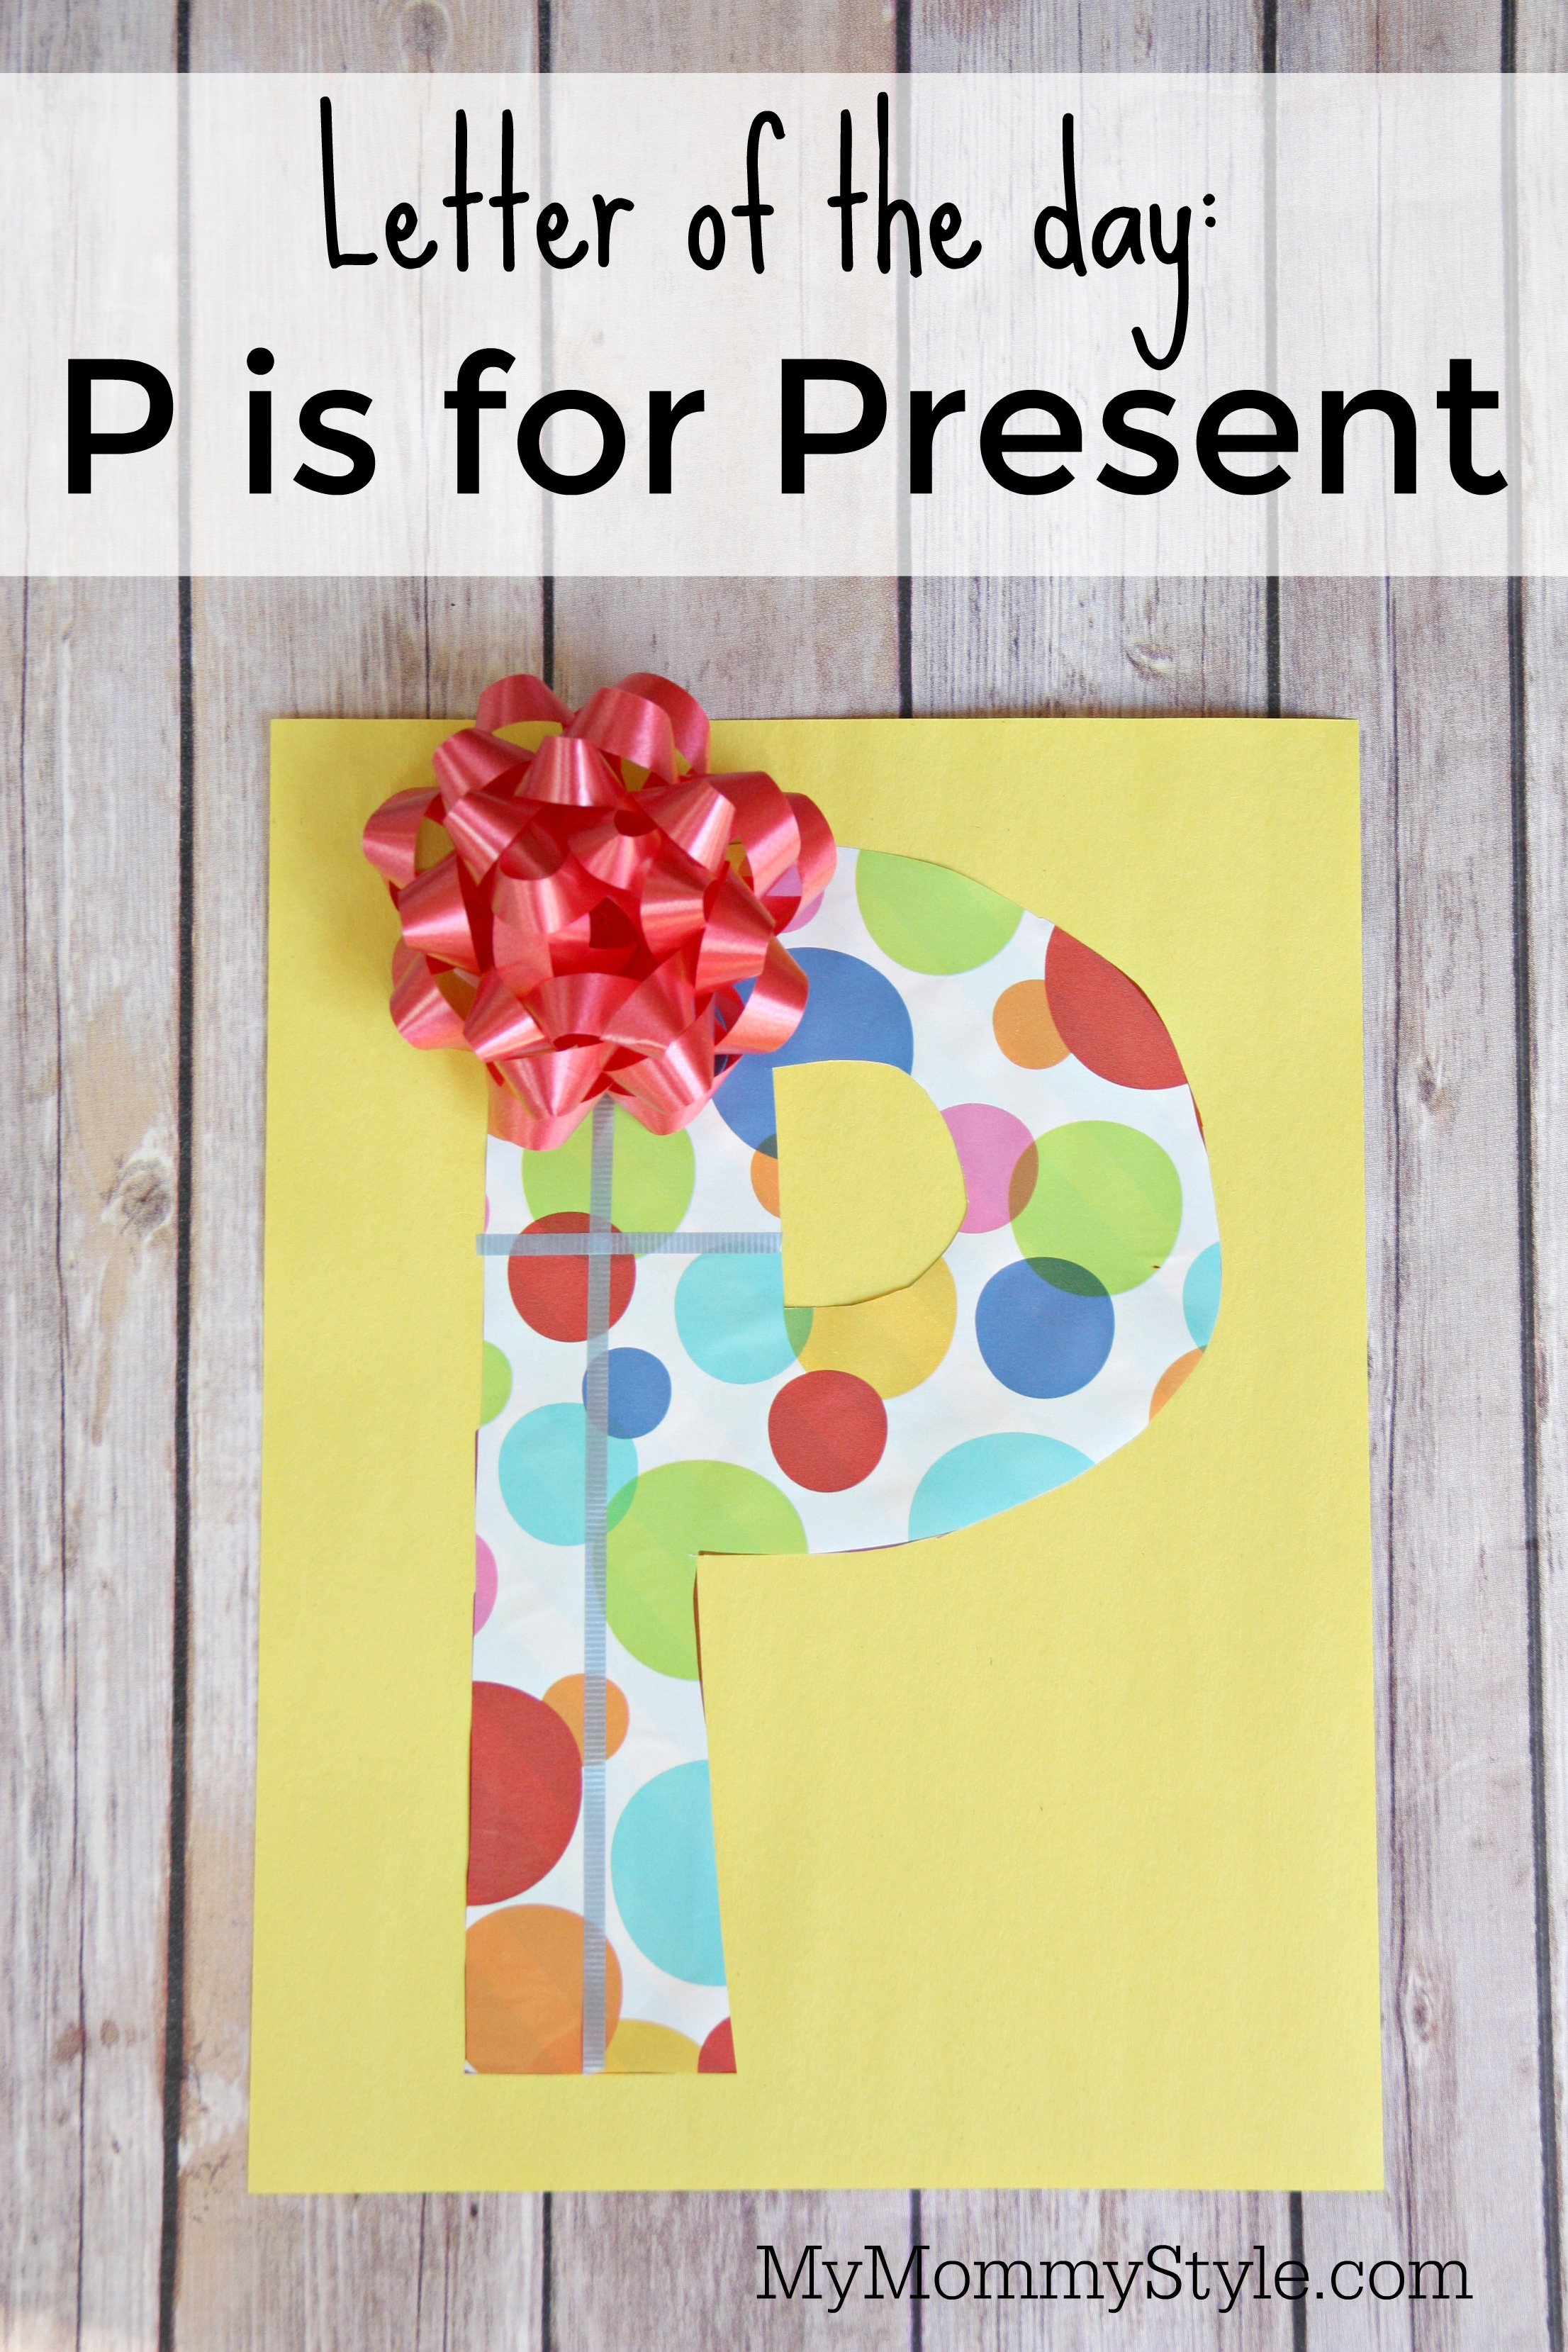 P is or present